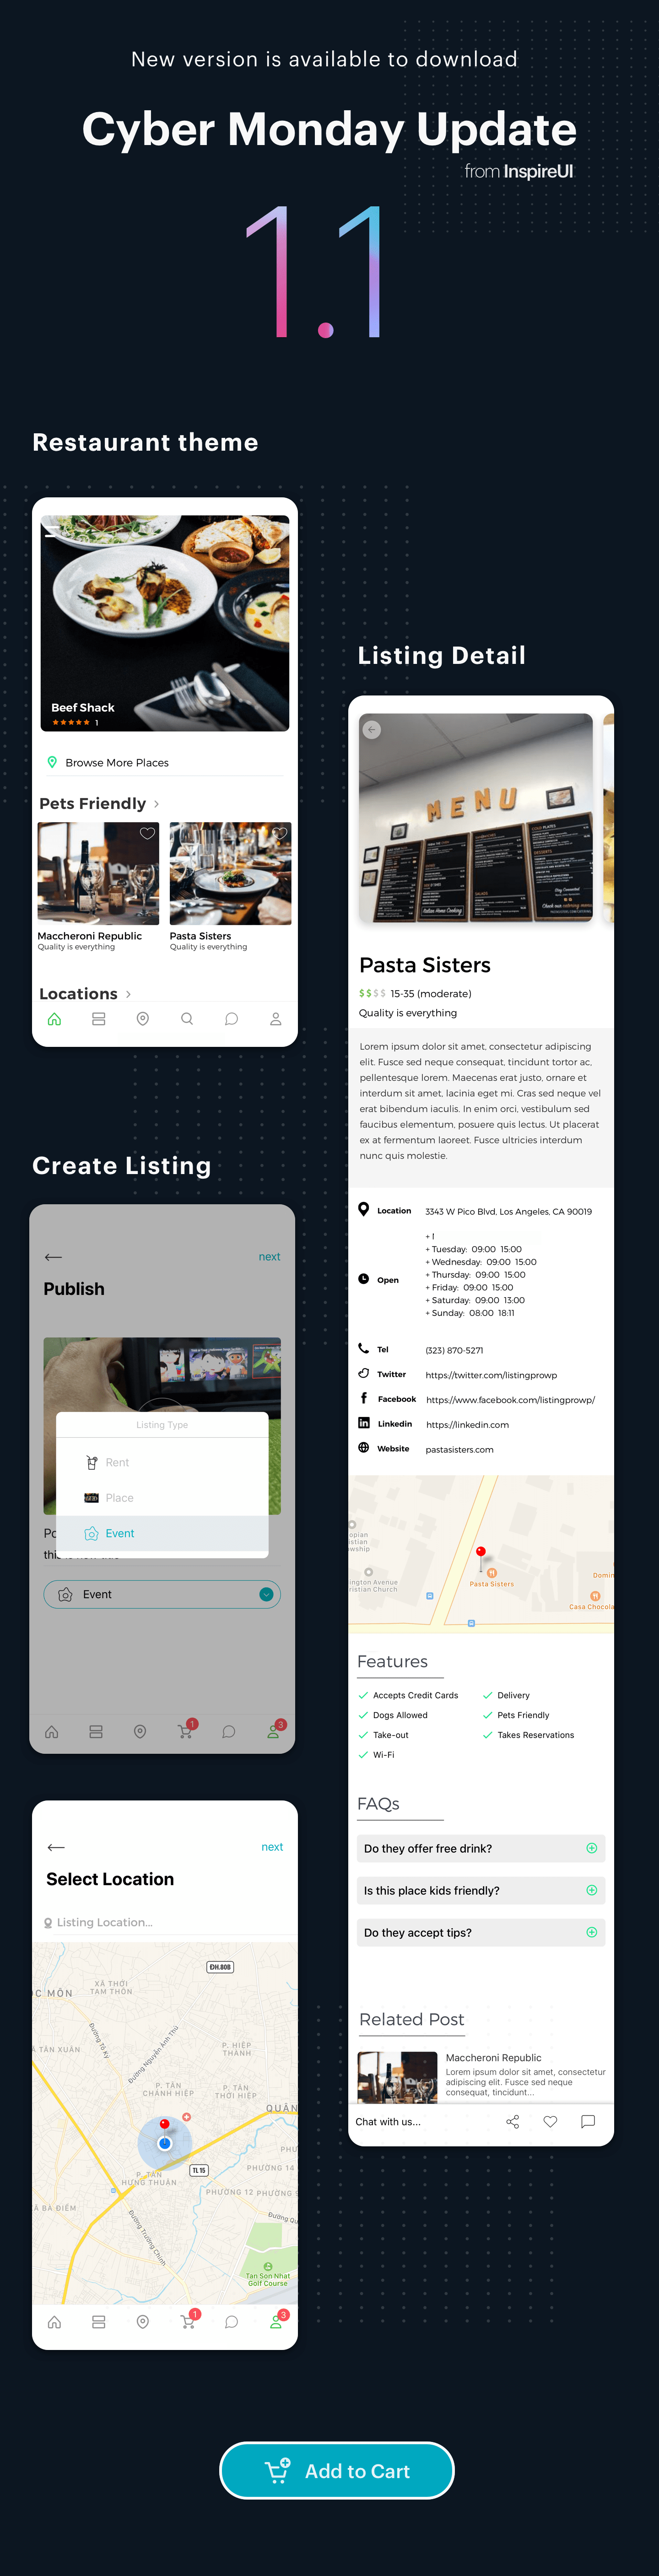 ListPro - Listing Directory React Native template - 4